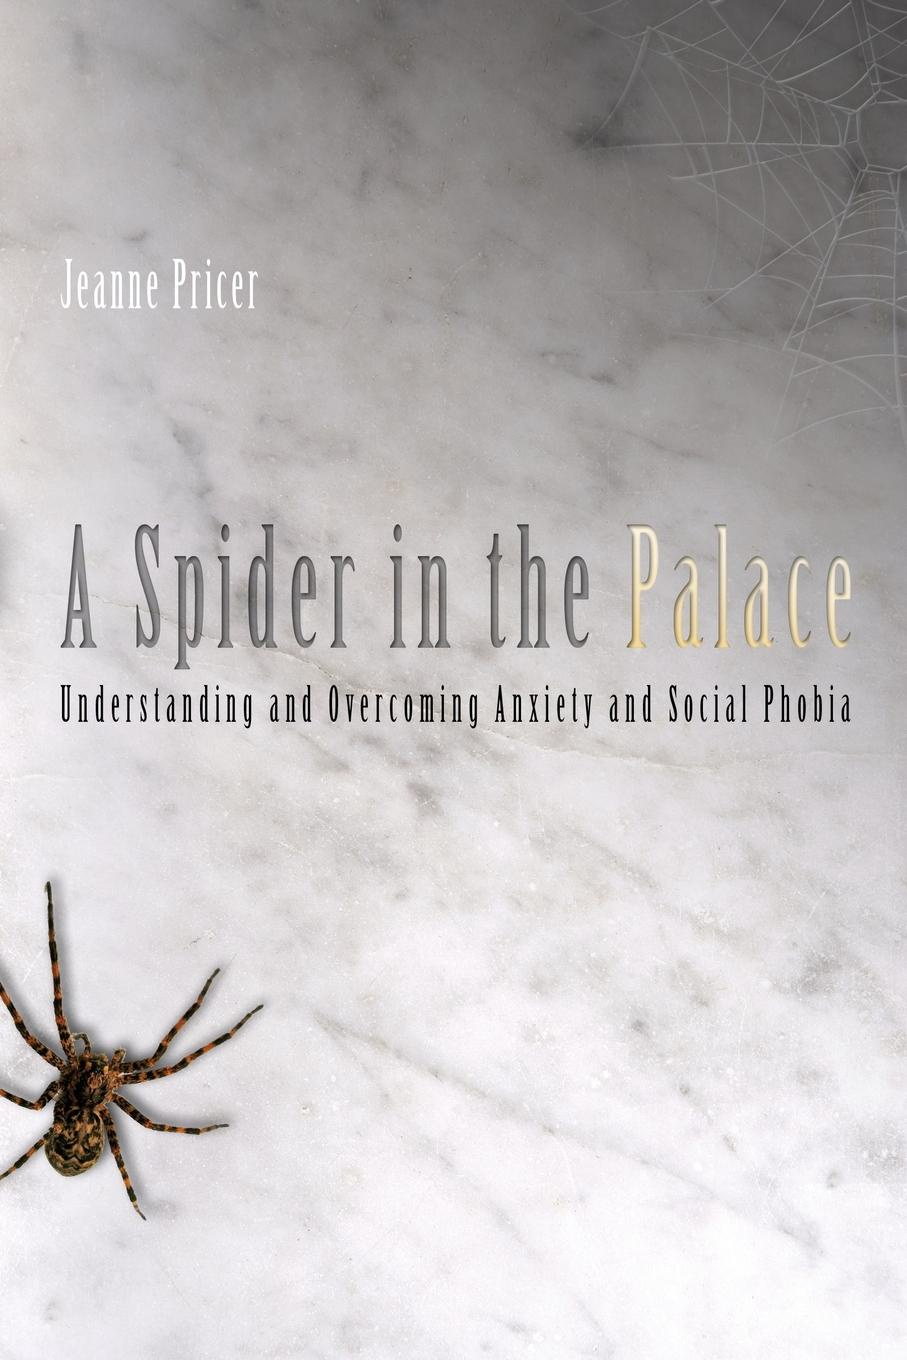 Jeanne Pricer A Spider in the Palace. Understanding and Overcoming Anxiety and Social Phobia детская футболка классическая унисекс printio social anxiety disorder